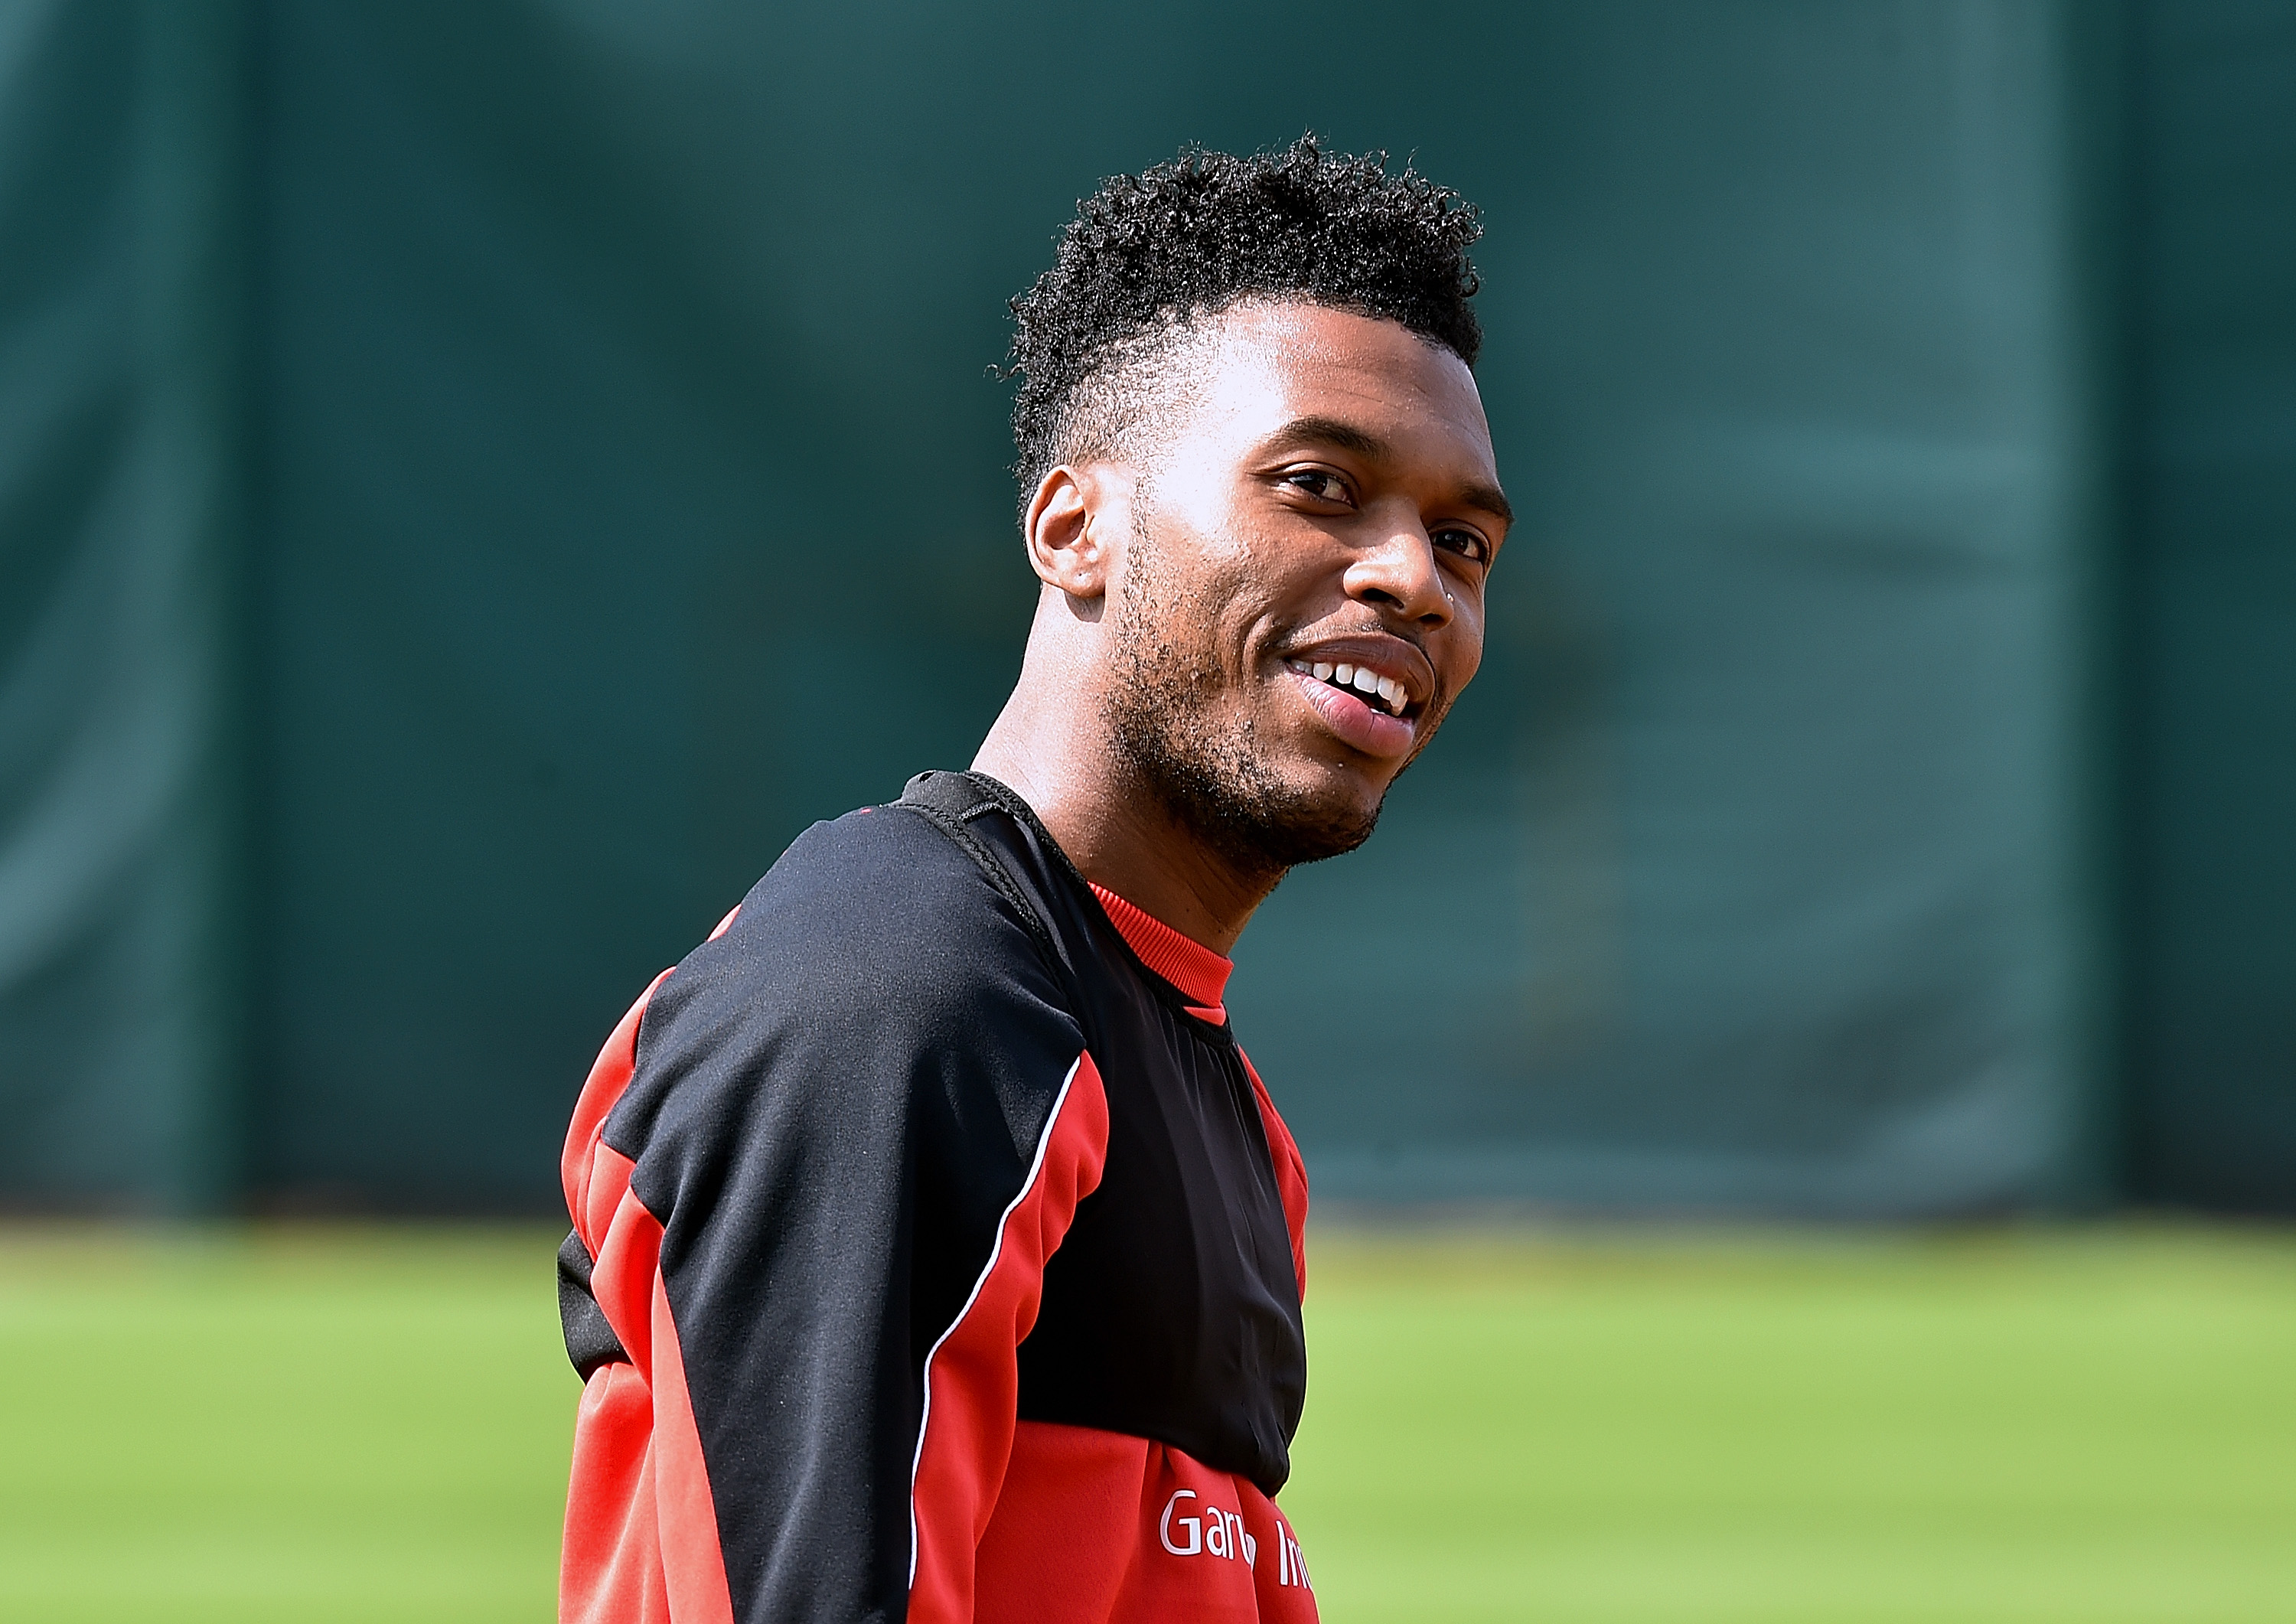 Should Arsenal try and sign Liverpool's Daniel Sturridge in the summer transfer window?